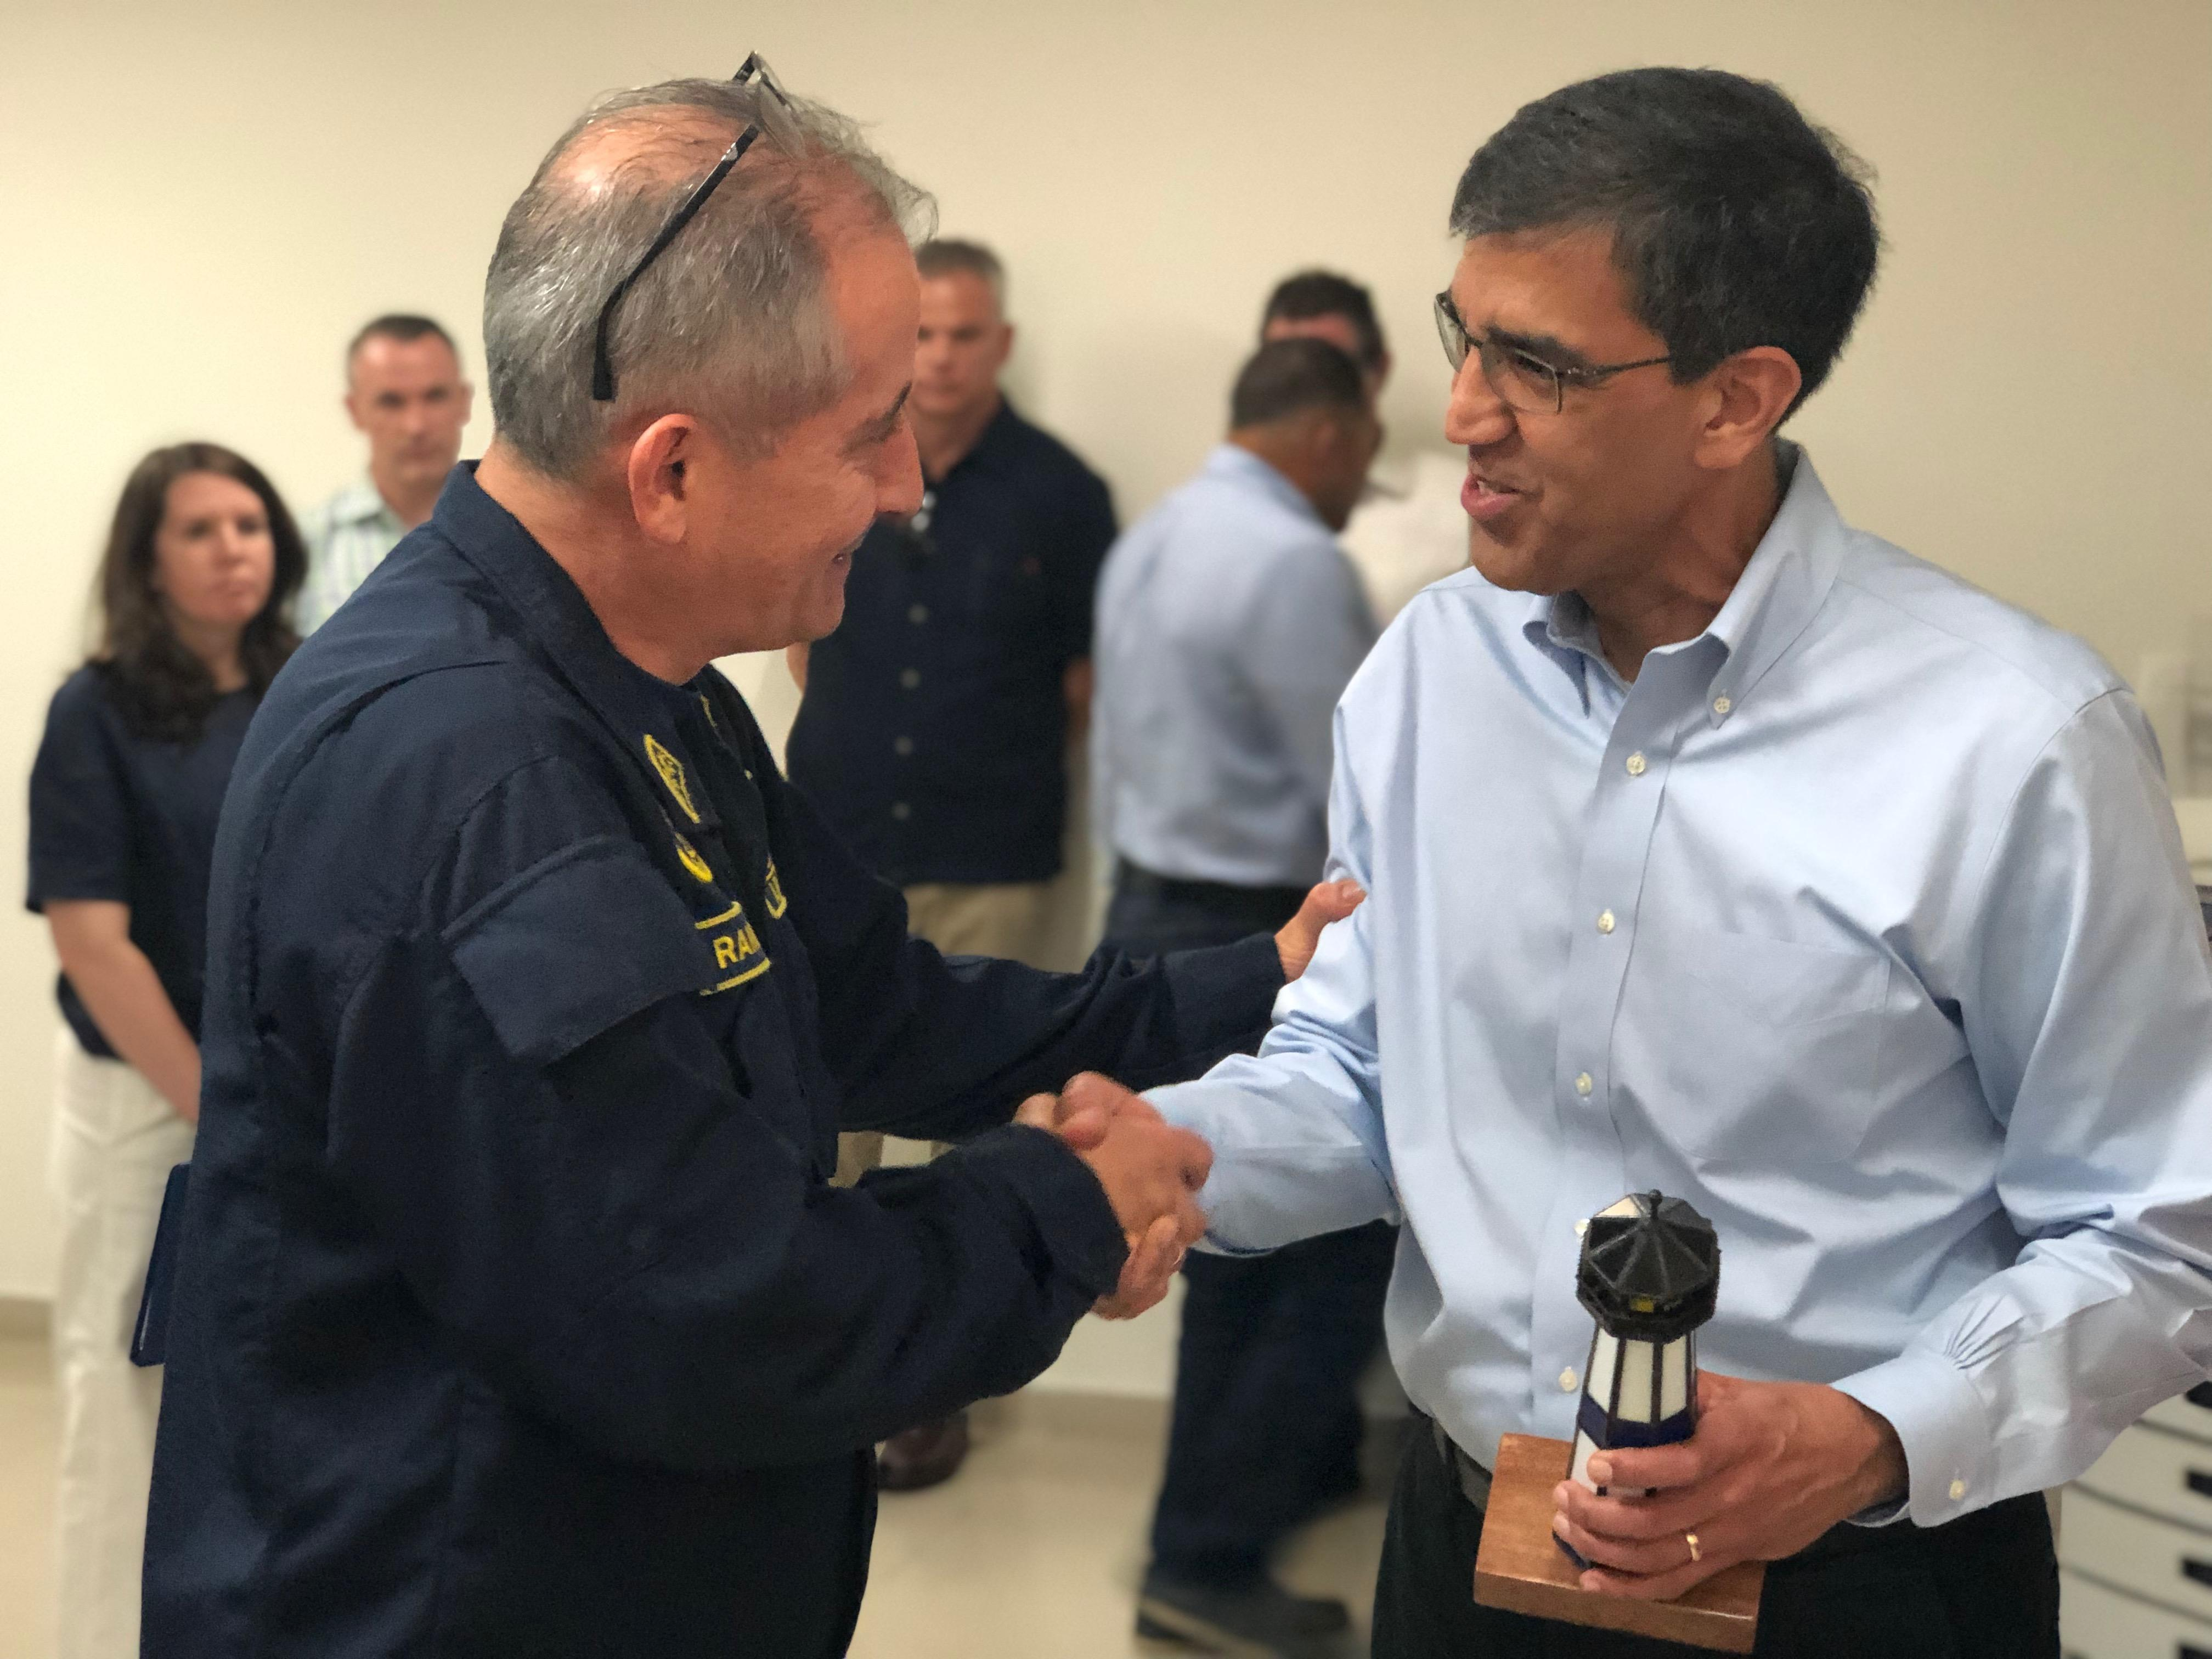 Acting Administrator receives a lighthouse from Admiral Ramirez that was handcrafted by a Colombian Navy Officer.